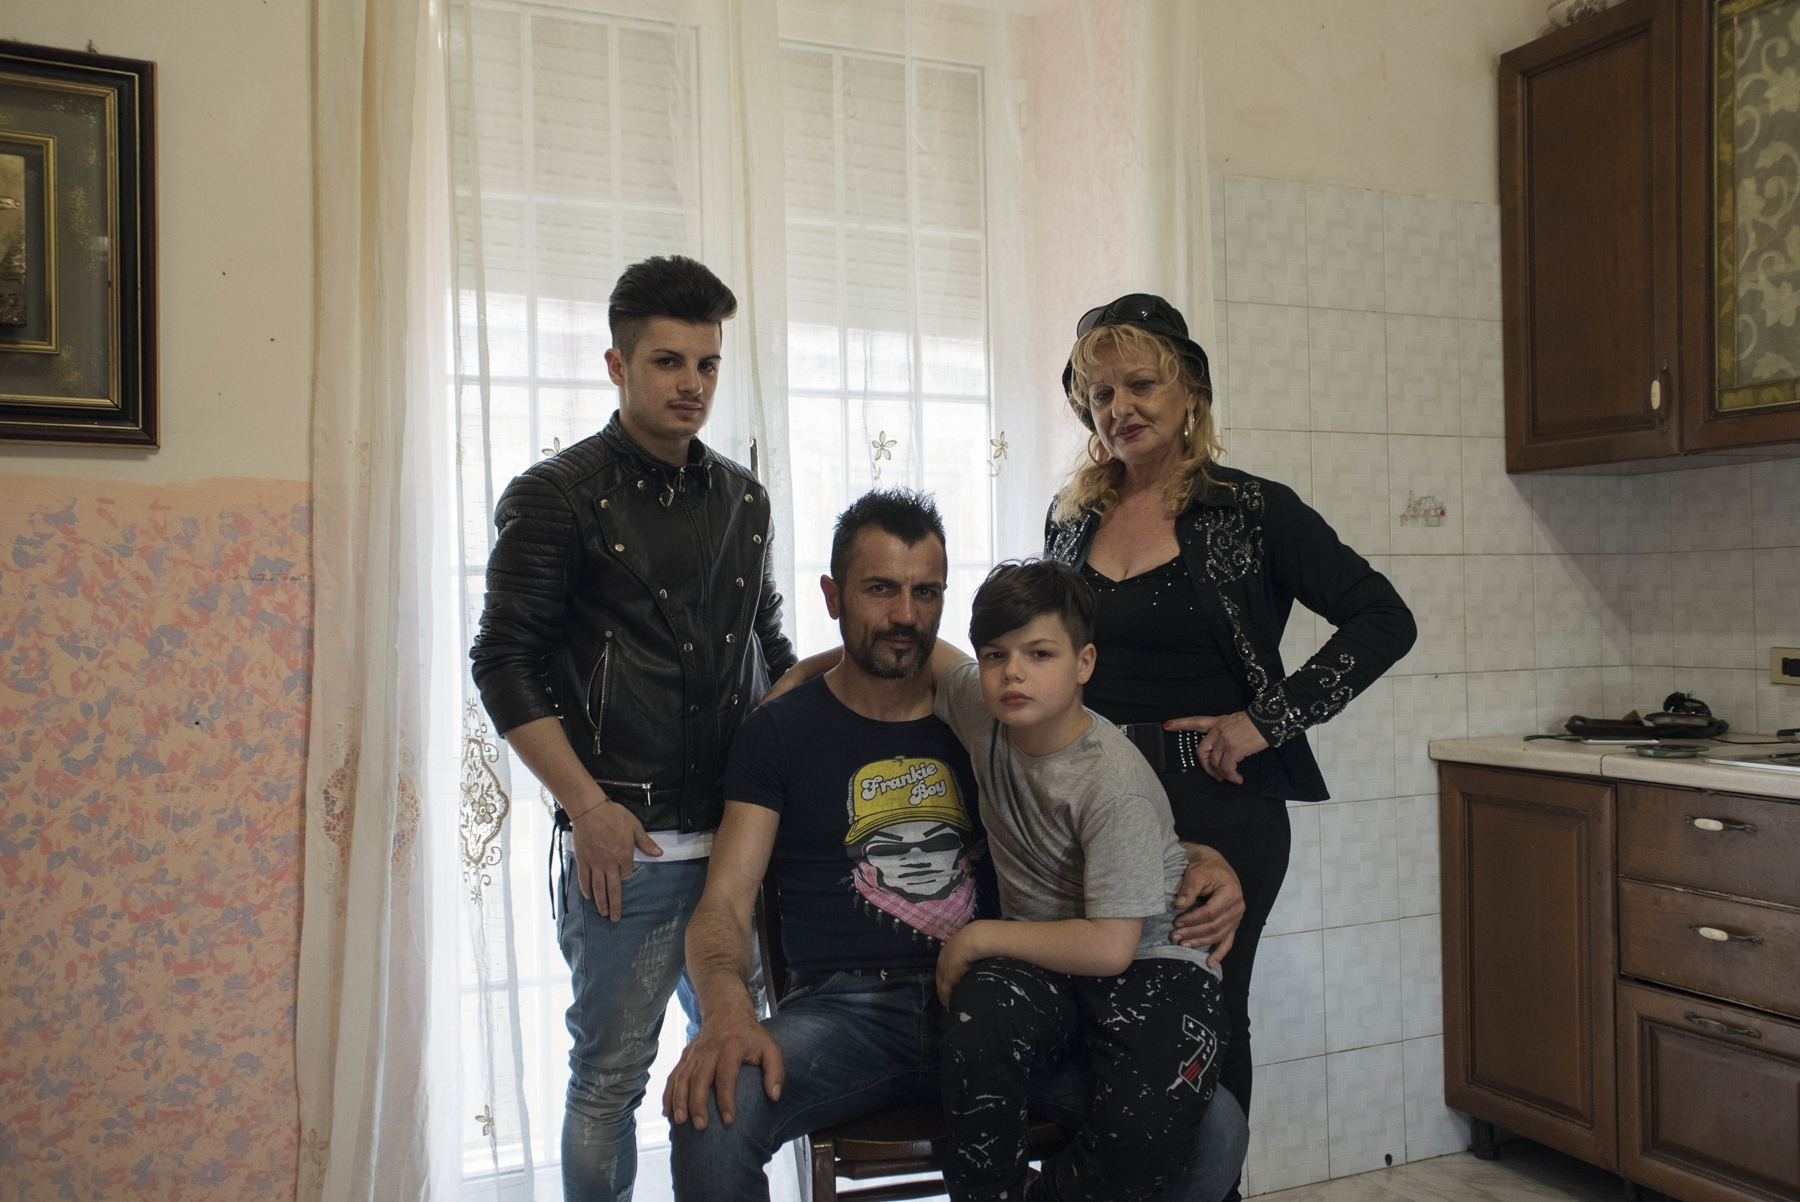 The Doria family poses at their home. From the left, Ivan Doria, 19, Gianni Doria, 42, Eman Doria, 9, and Maria Doria, mother of Gianni and singer as well.